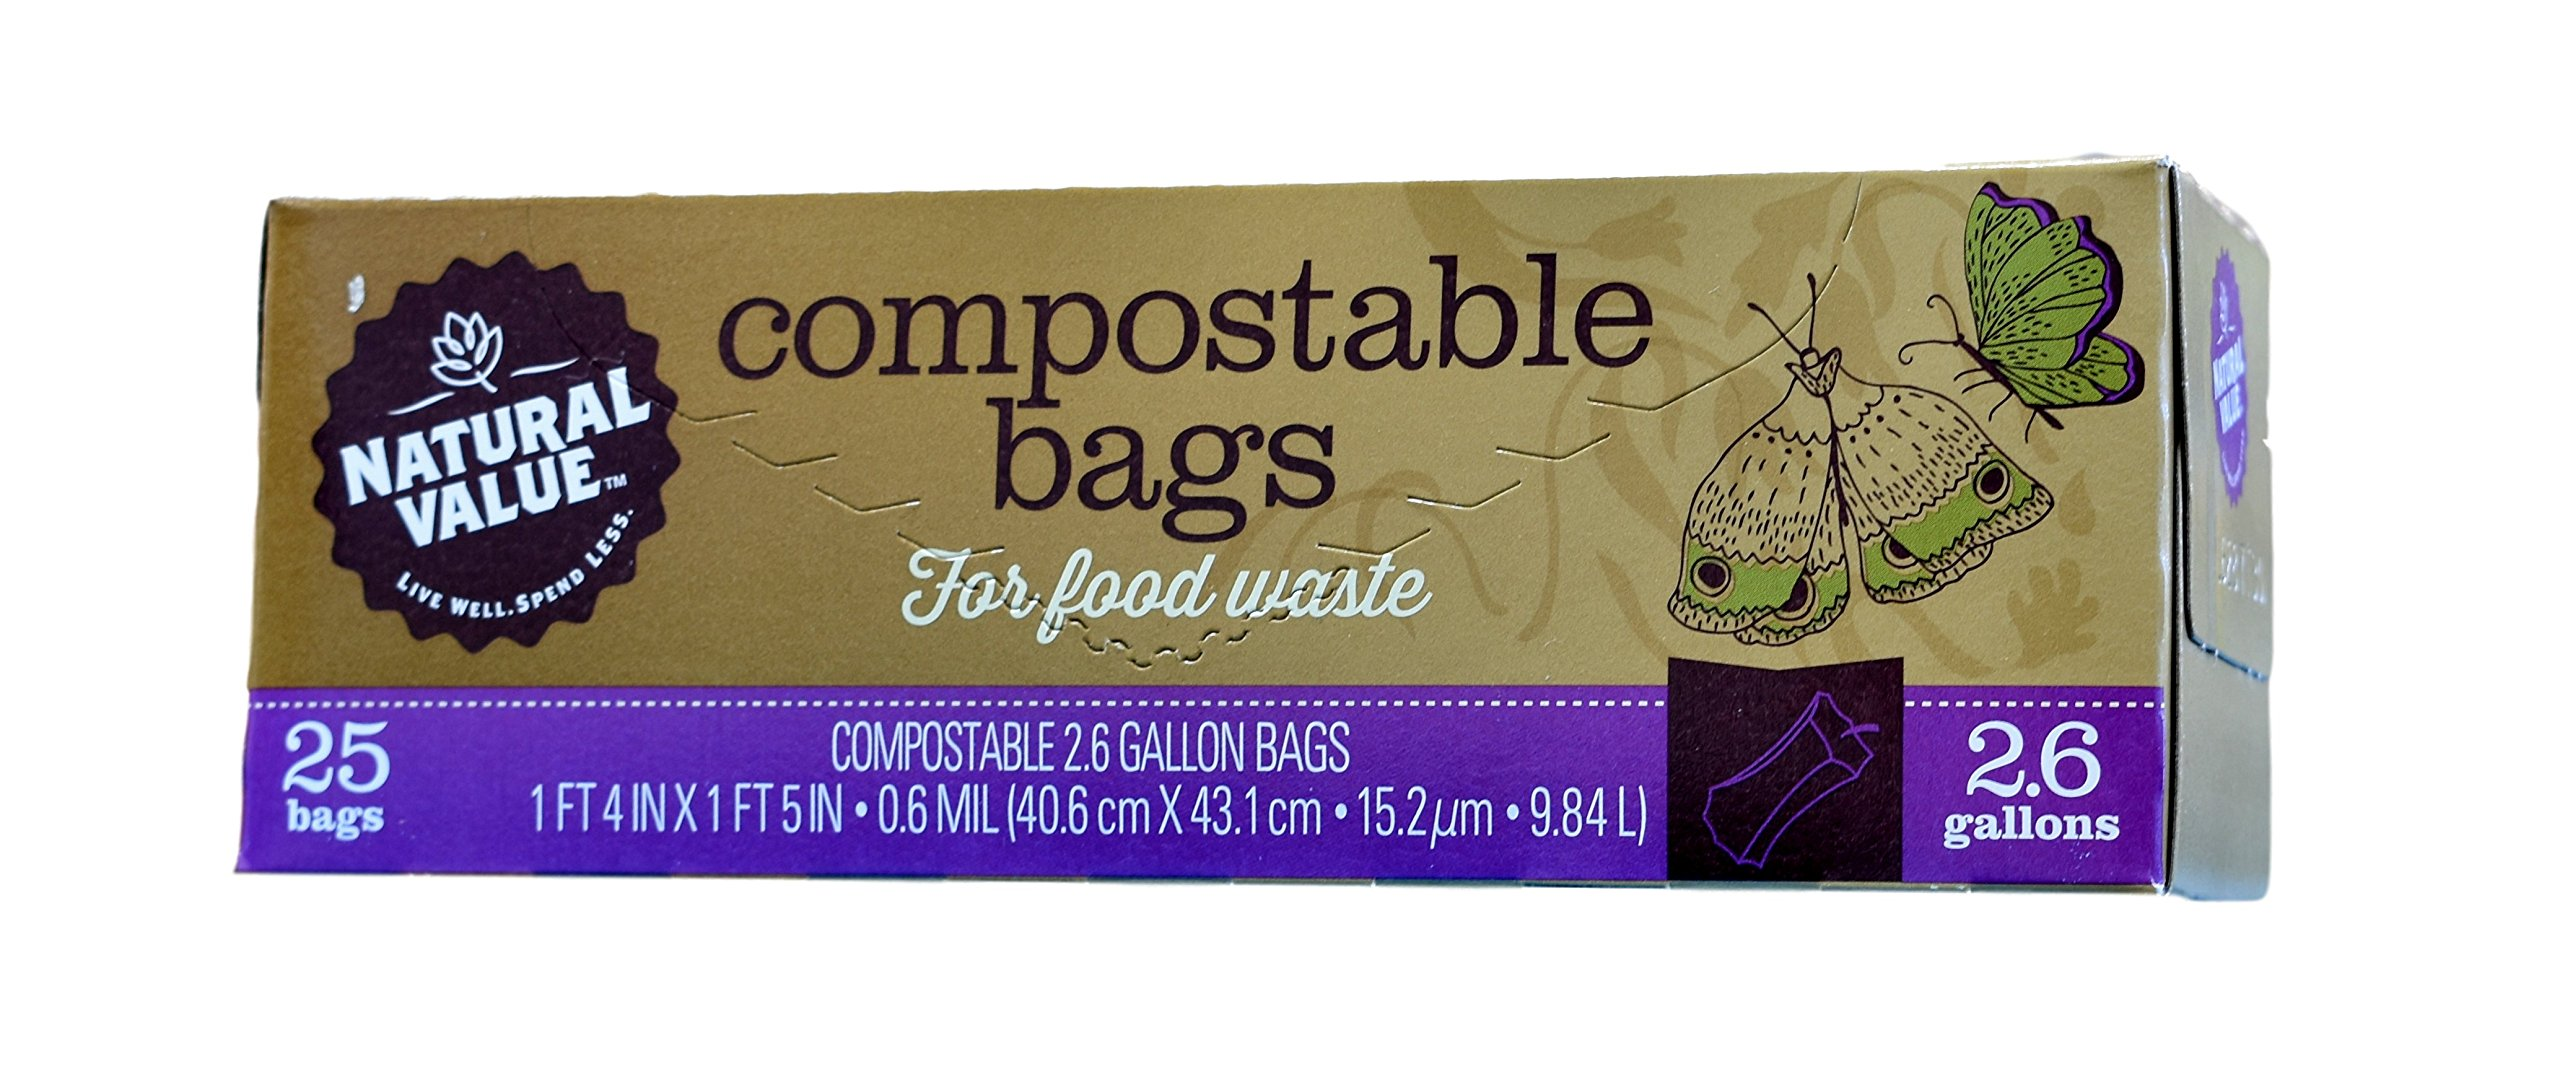 Natural Value - Compostable Bags for Food Waste - 25 Bags - 2.6 Gallons